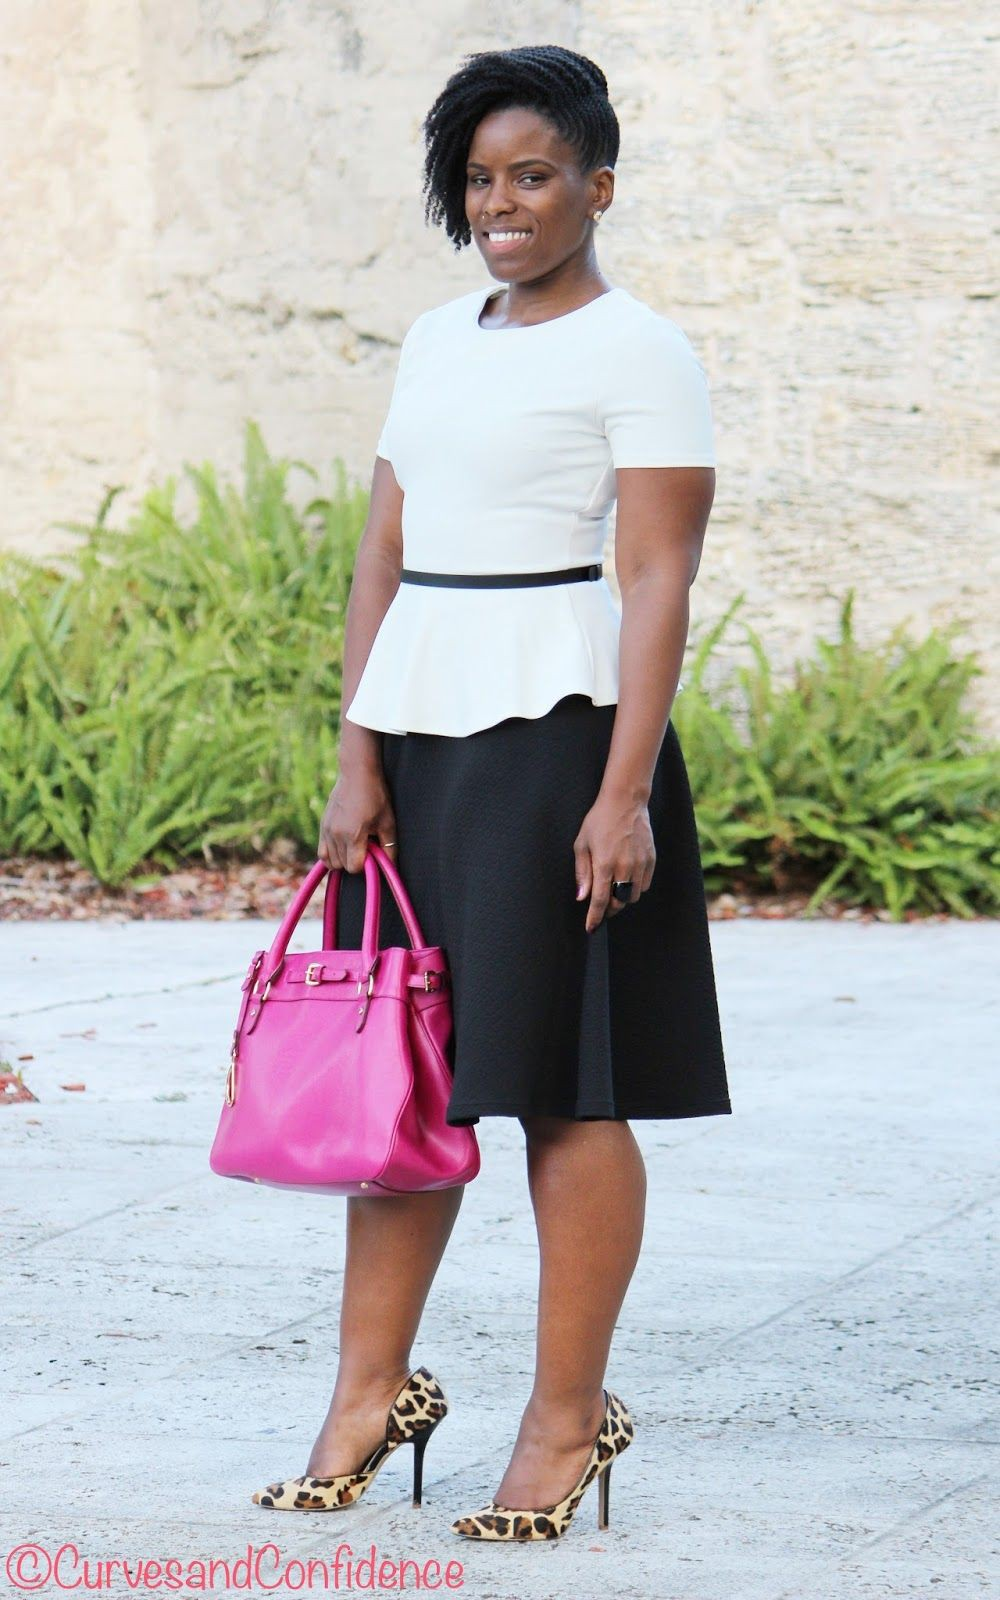 White and pink outfit style with business casual, pencil skirt, trousers, jeans